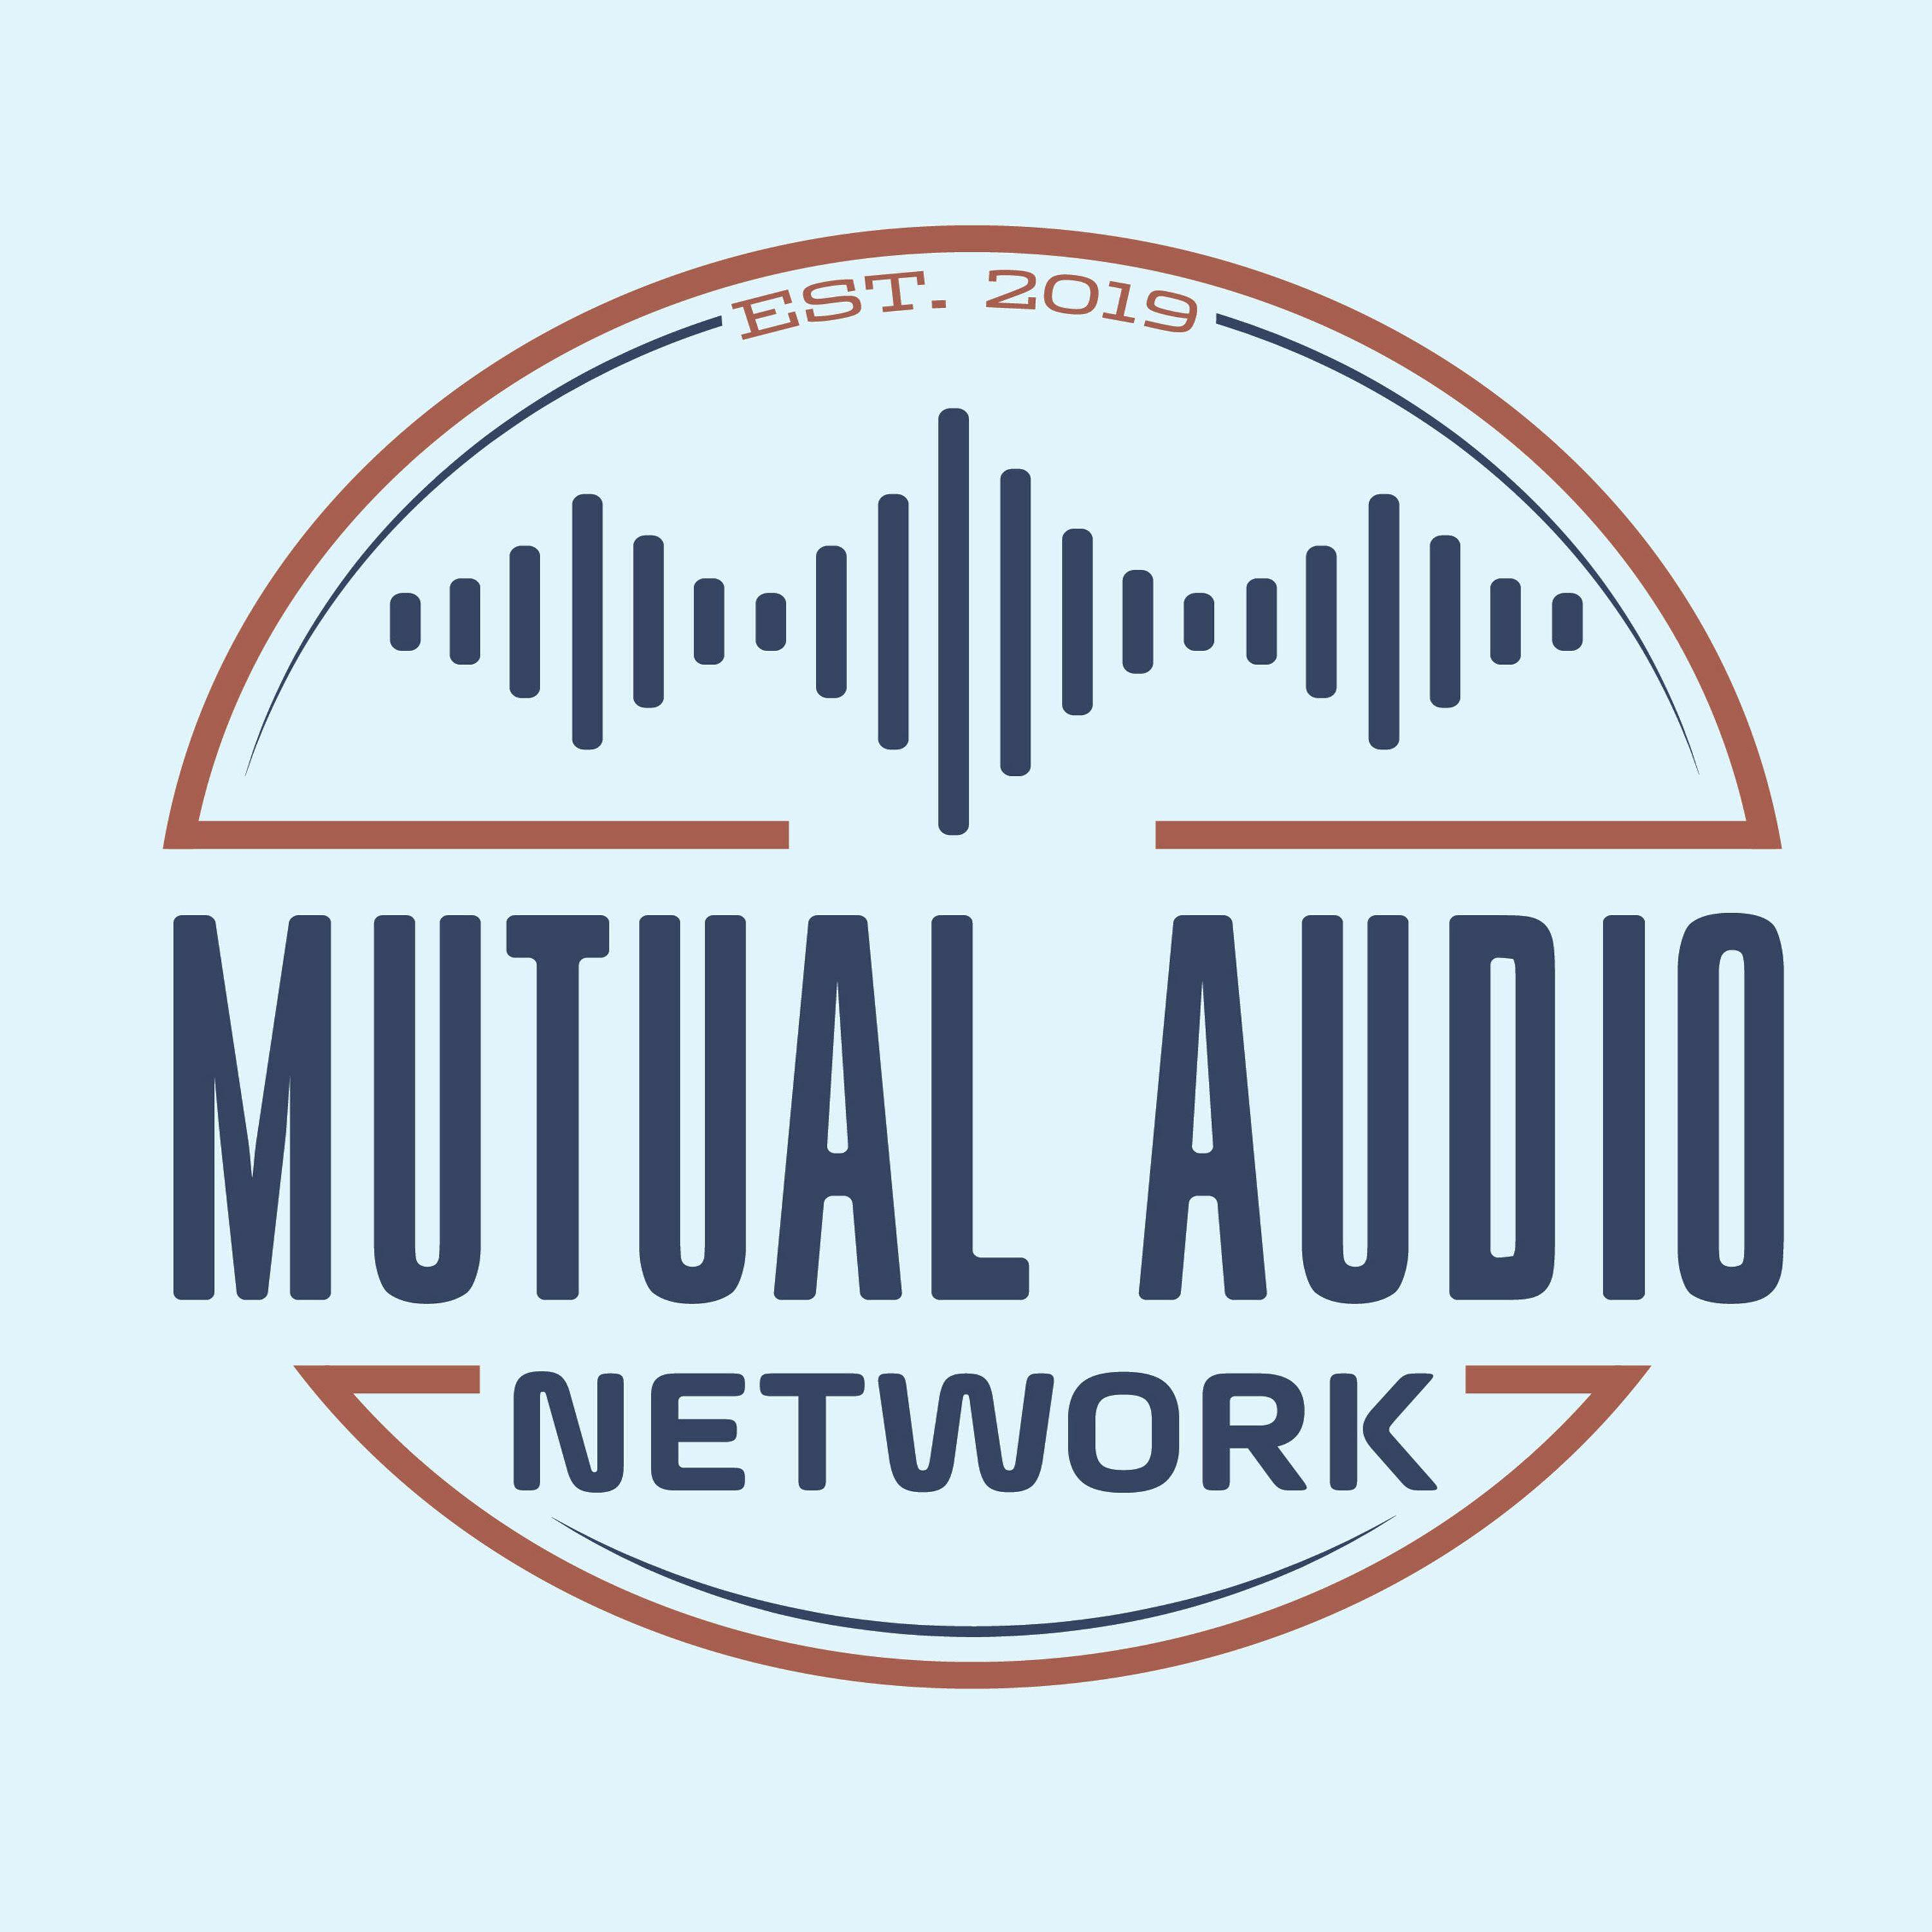 The Mutual Audio Network